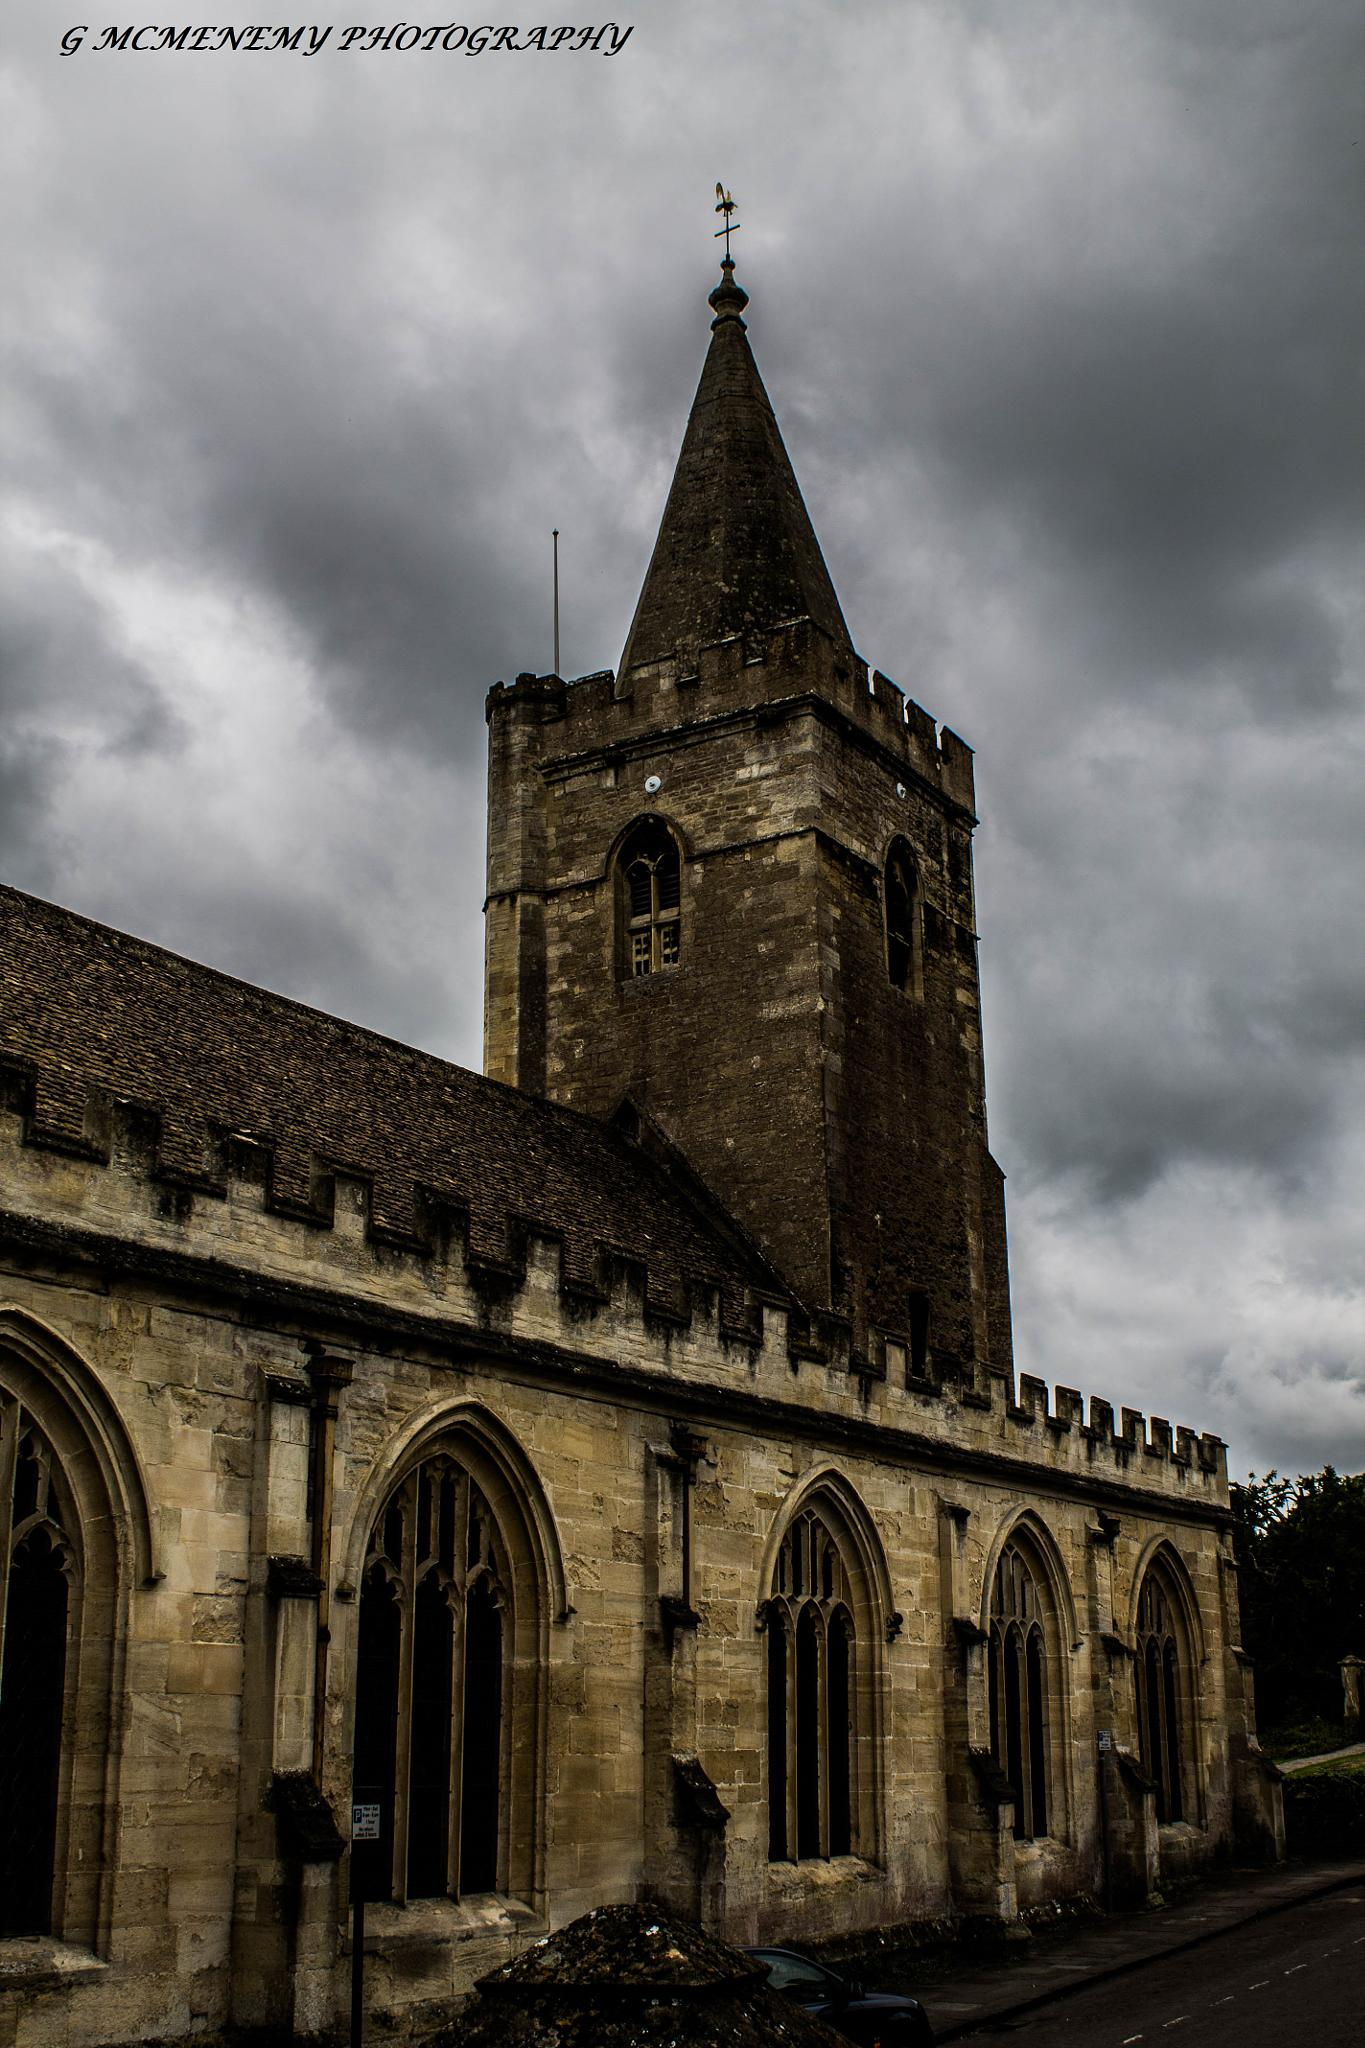 Bradford on Avon Church by george.mcmenemy.7